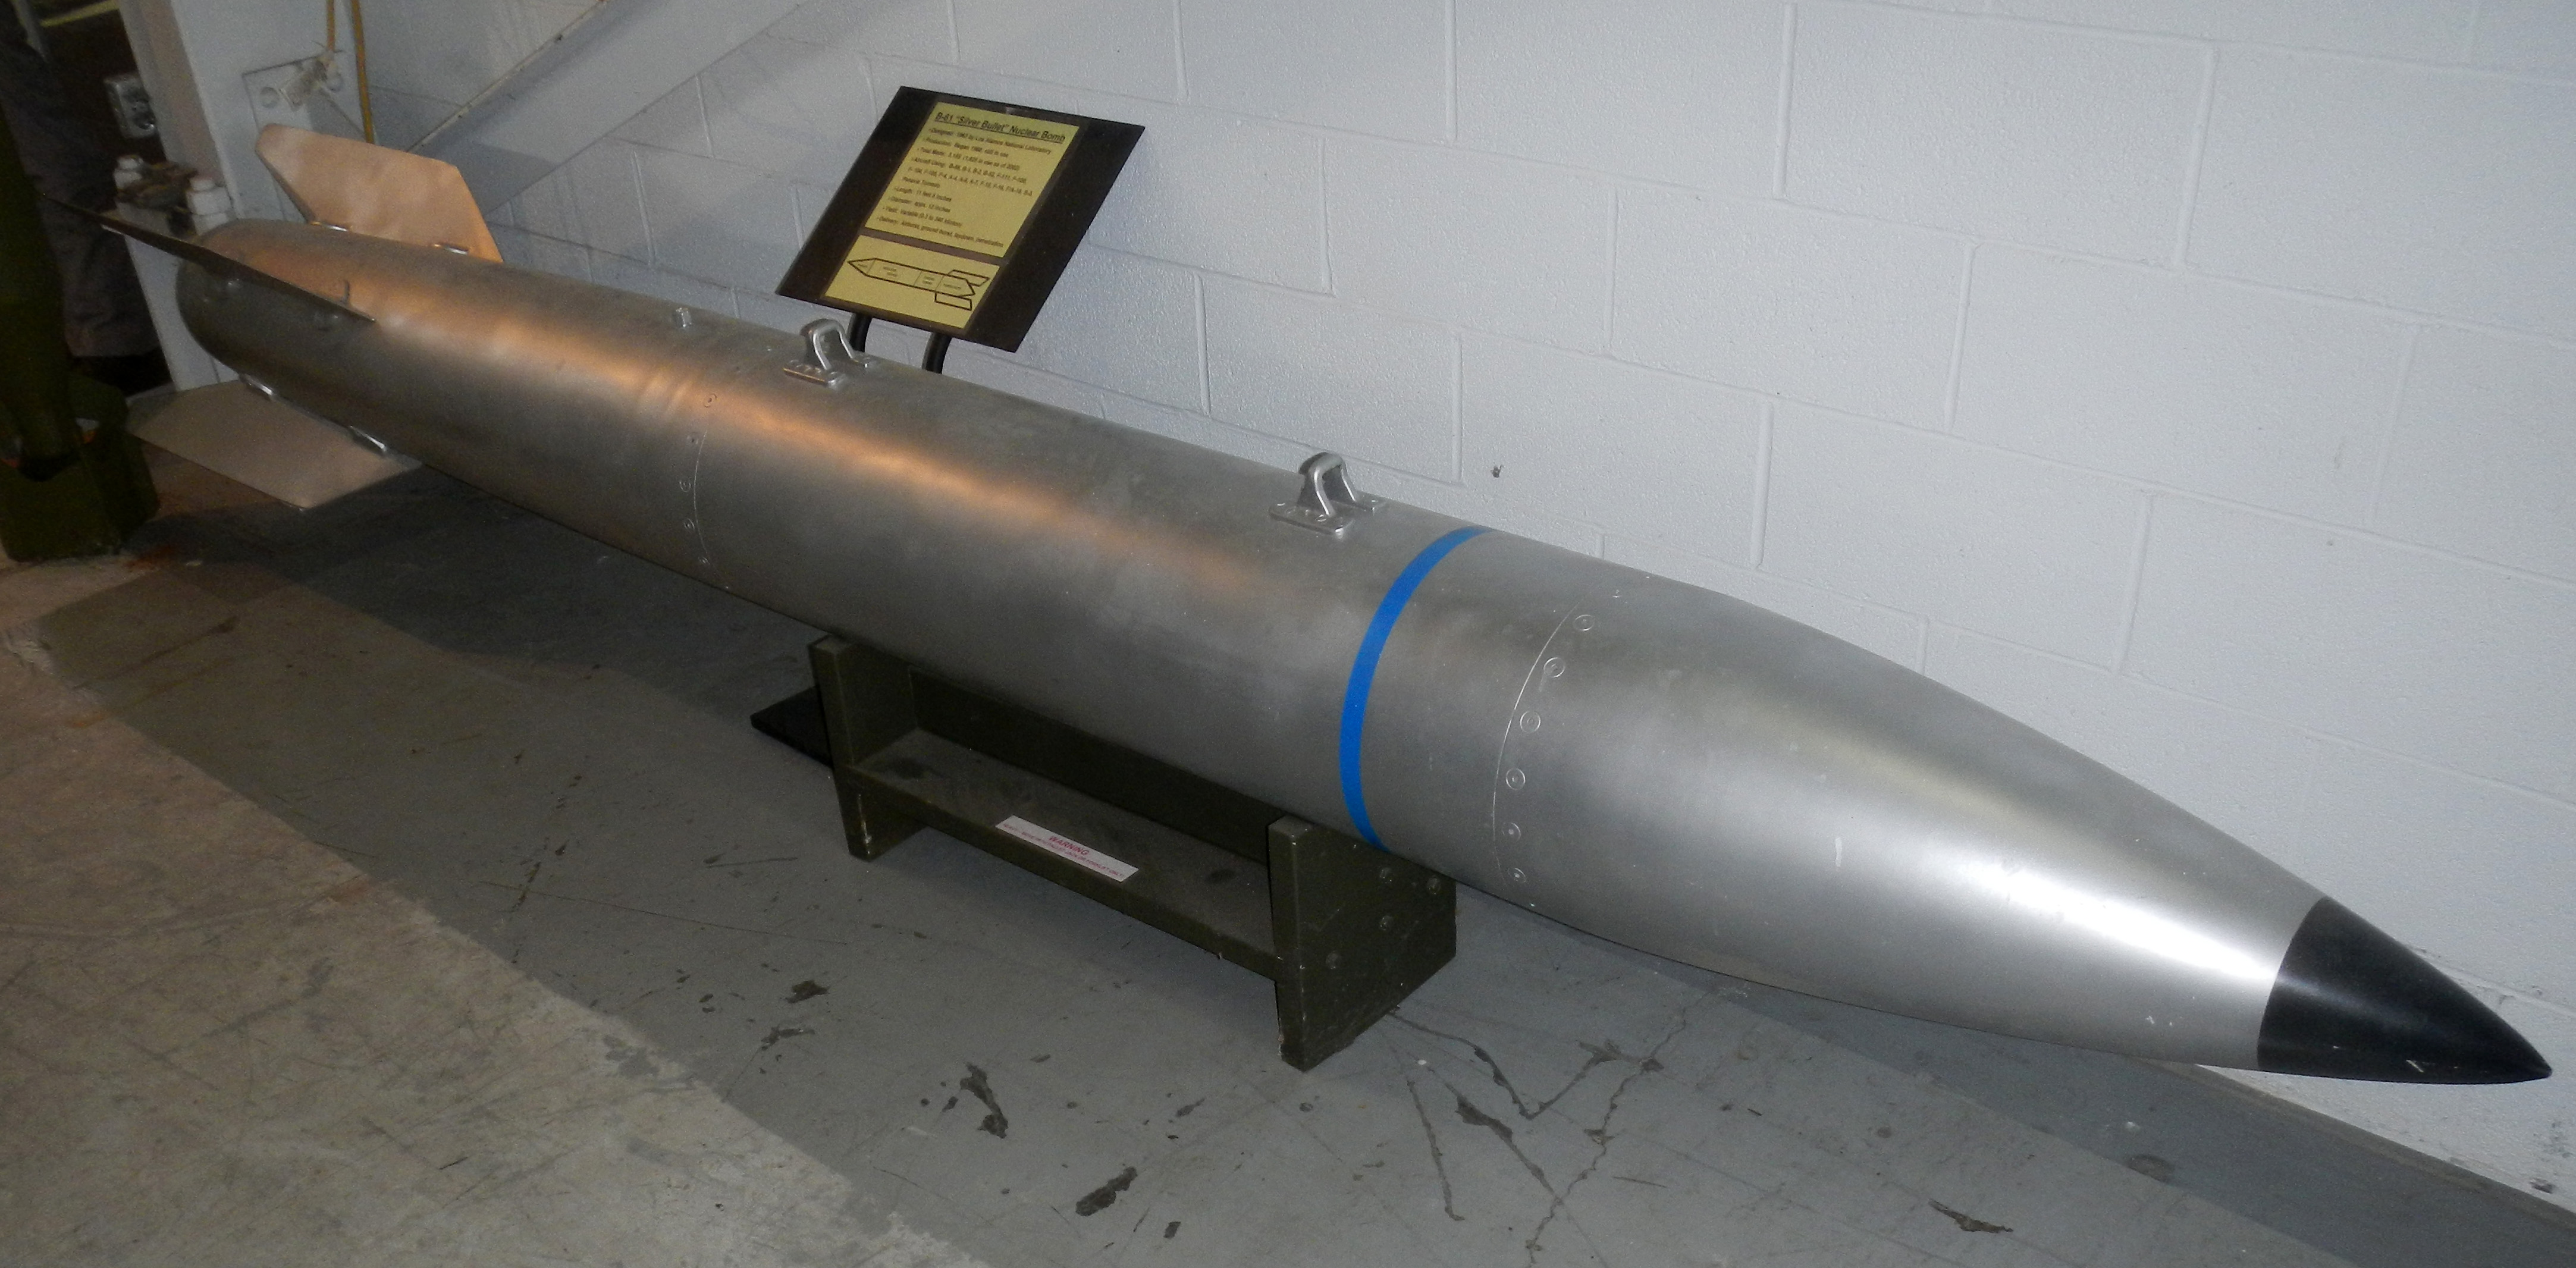 is how to build a nuclear weapon classified